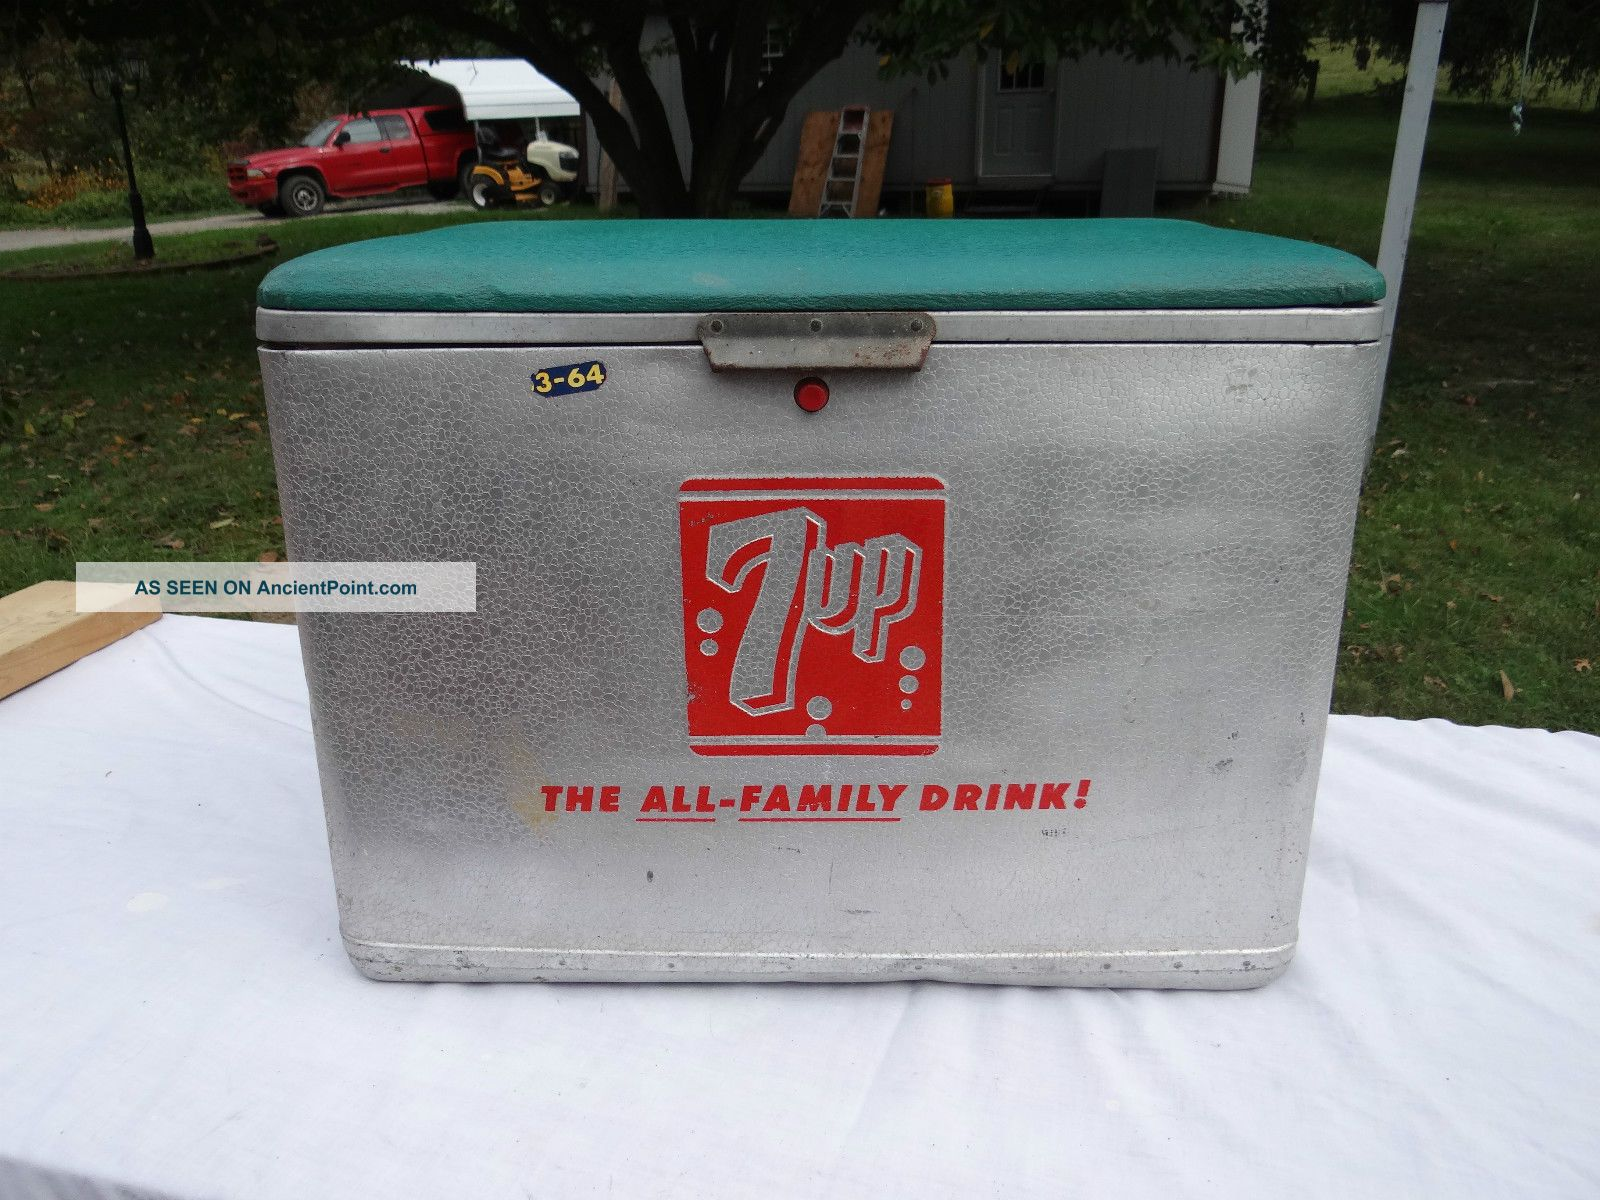 Vintage (7 - Up) Coolerpadded Green Vinyl Top (quality Cronstroms Servvice) Ice Boxes photo